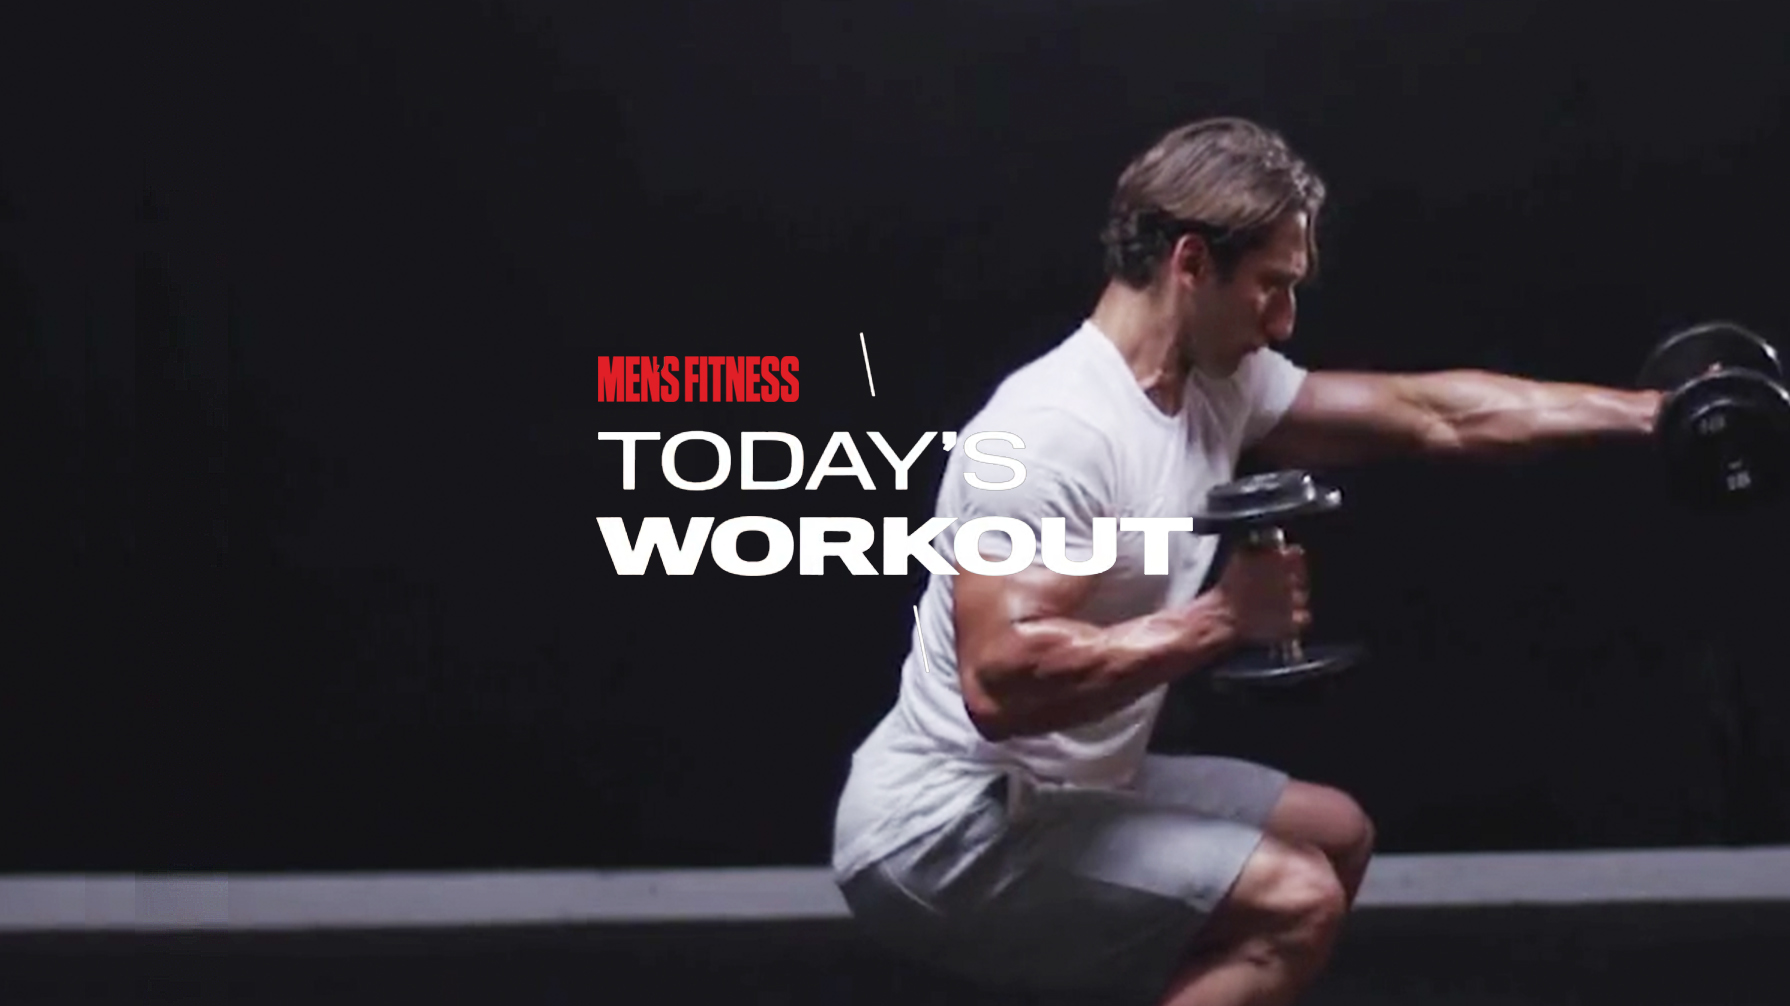 Today's Workout 74: The rapid-fire cardio circuit to sweat buckets